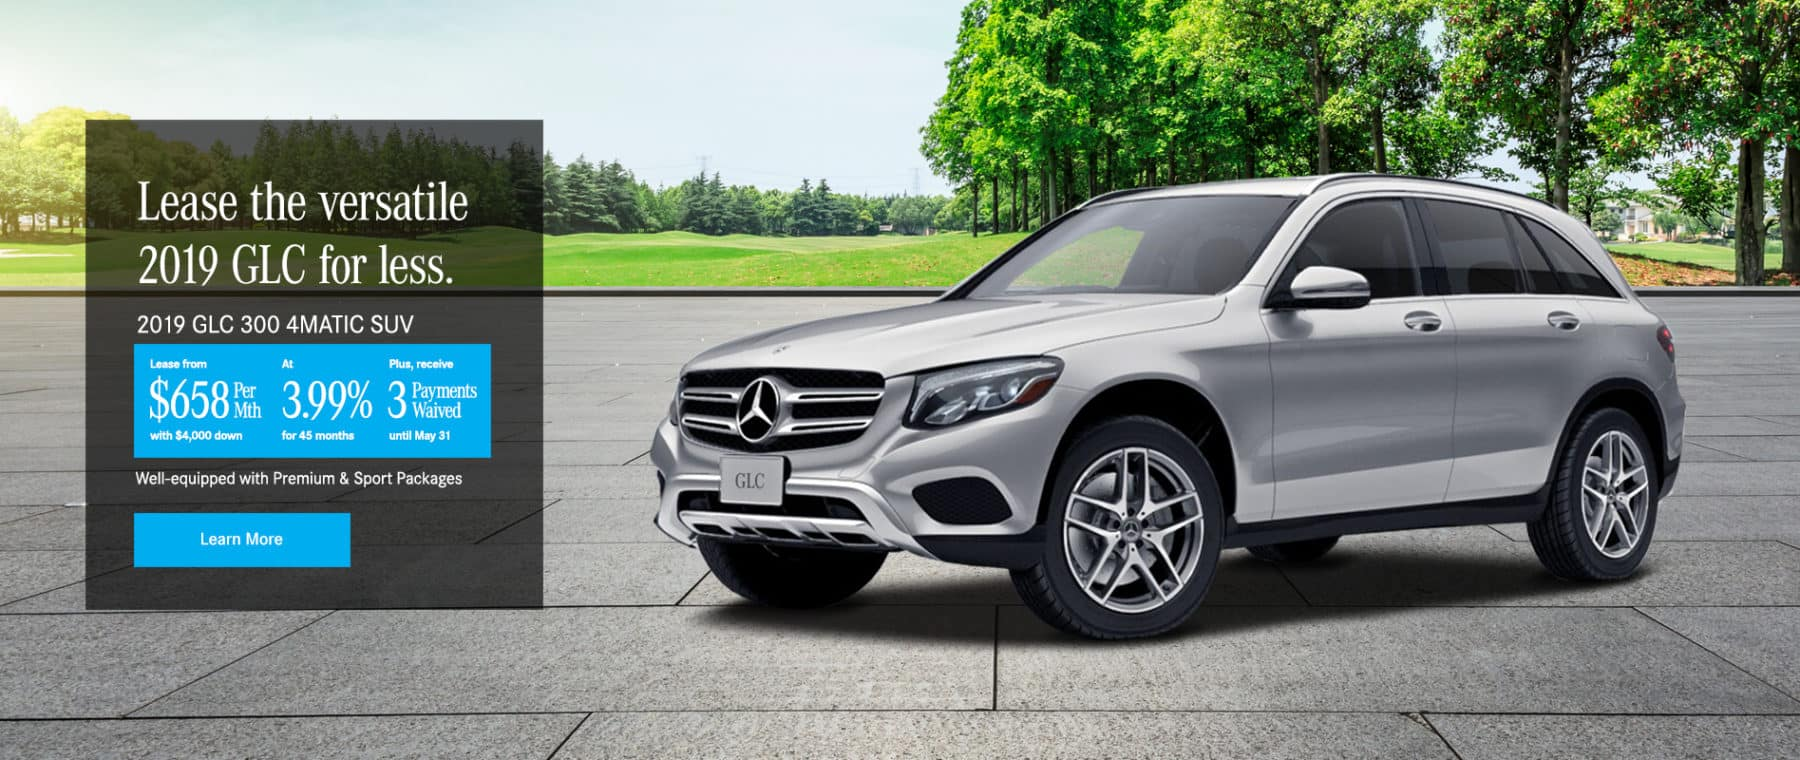 1920x800_HP-SLIDER_05-2019_NC-2019-GLC-300-SUV-enhanced_2